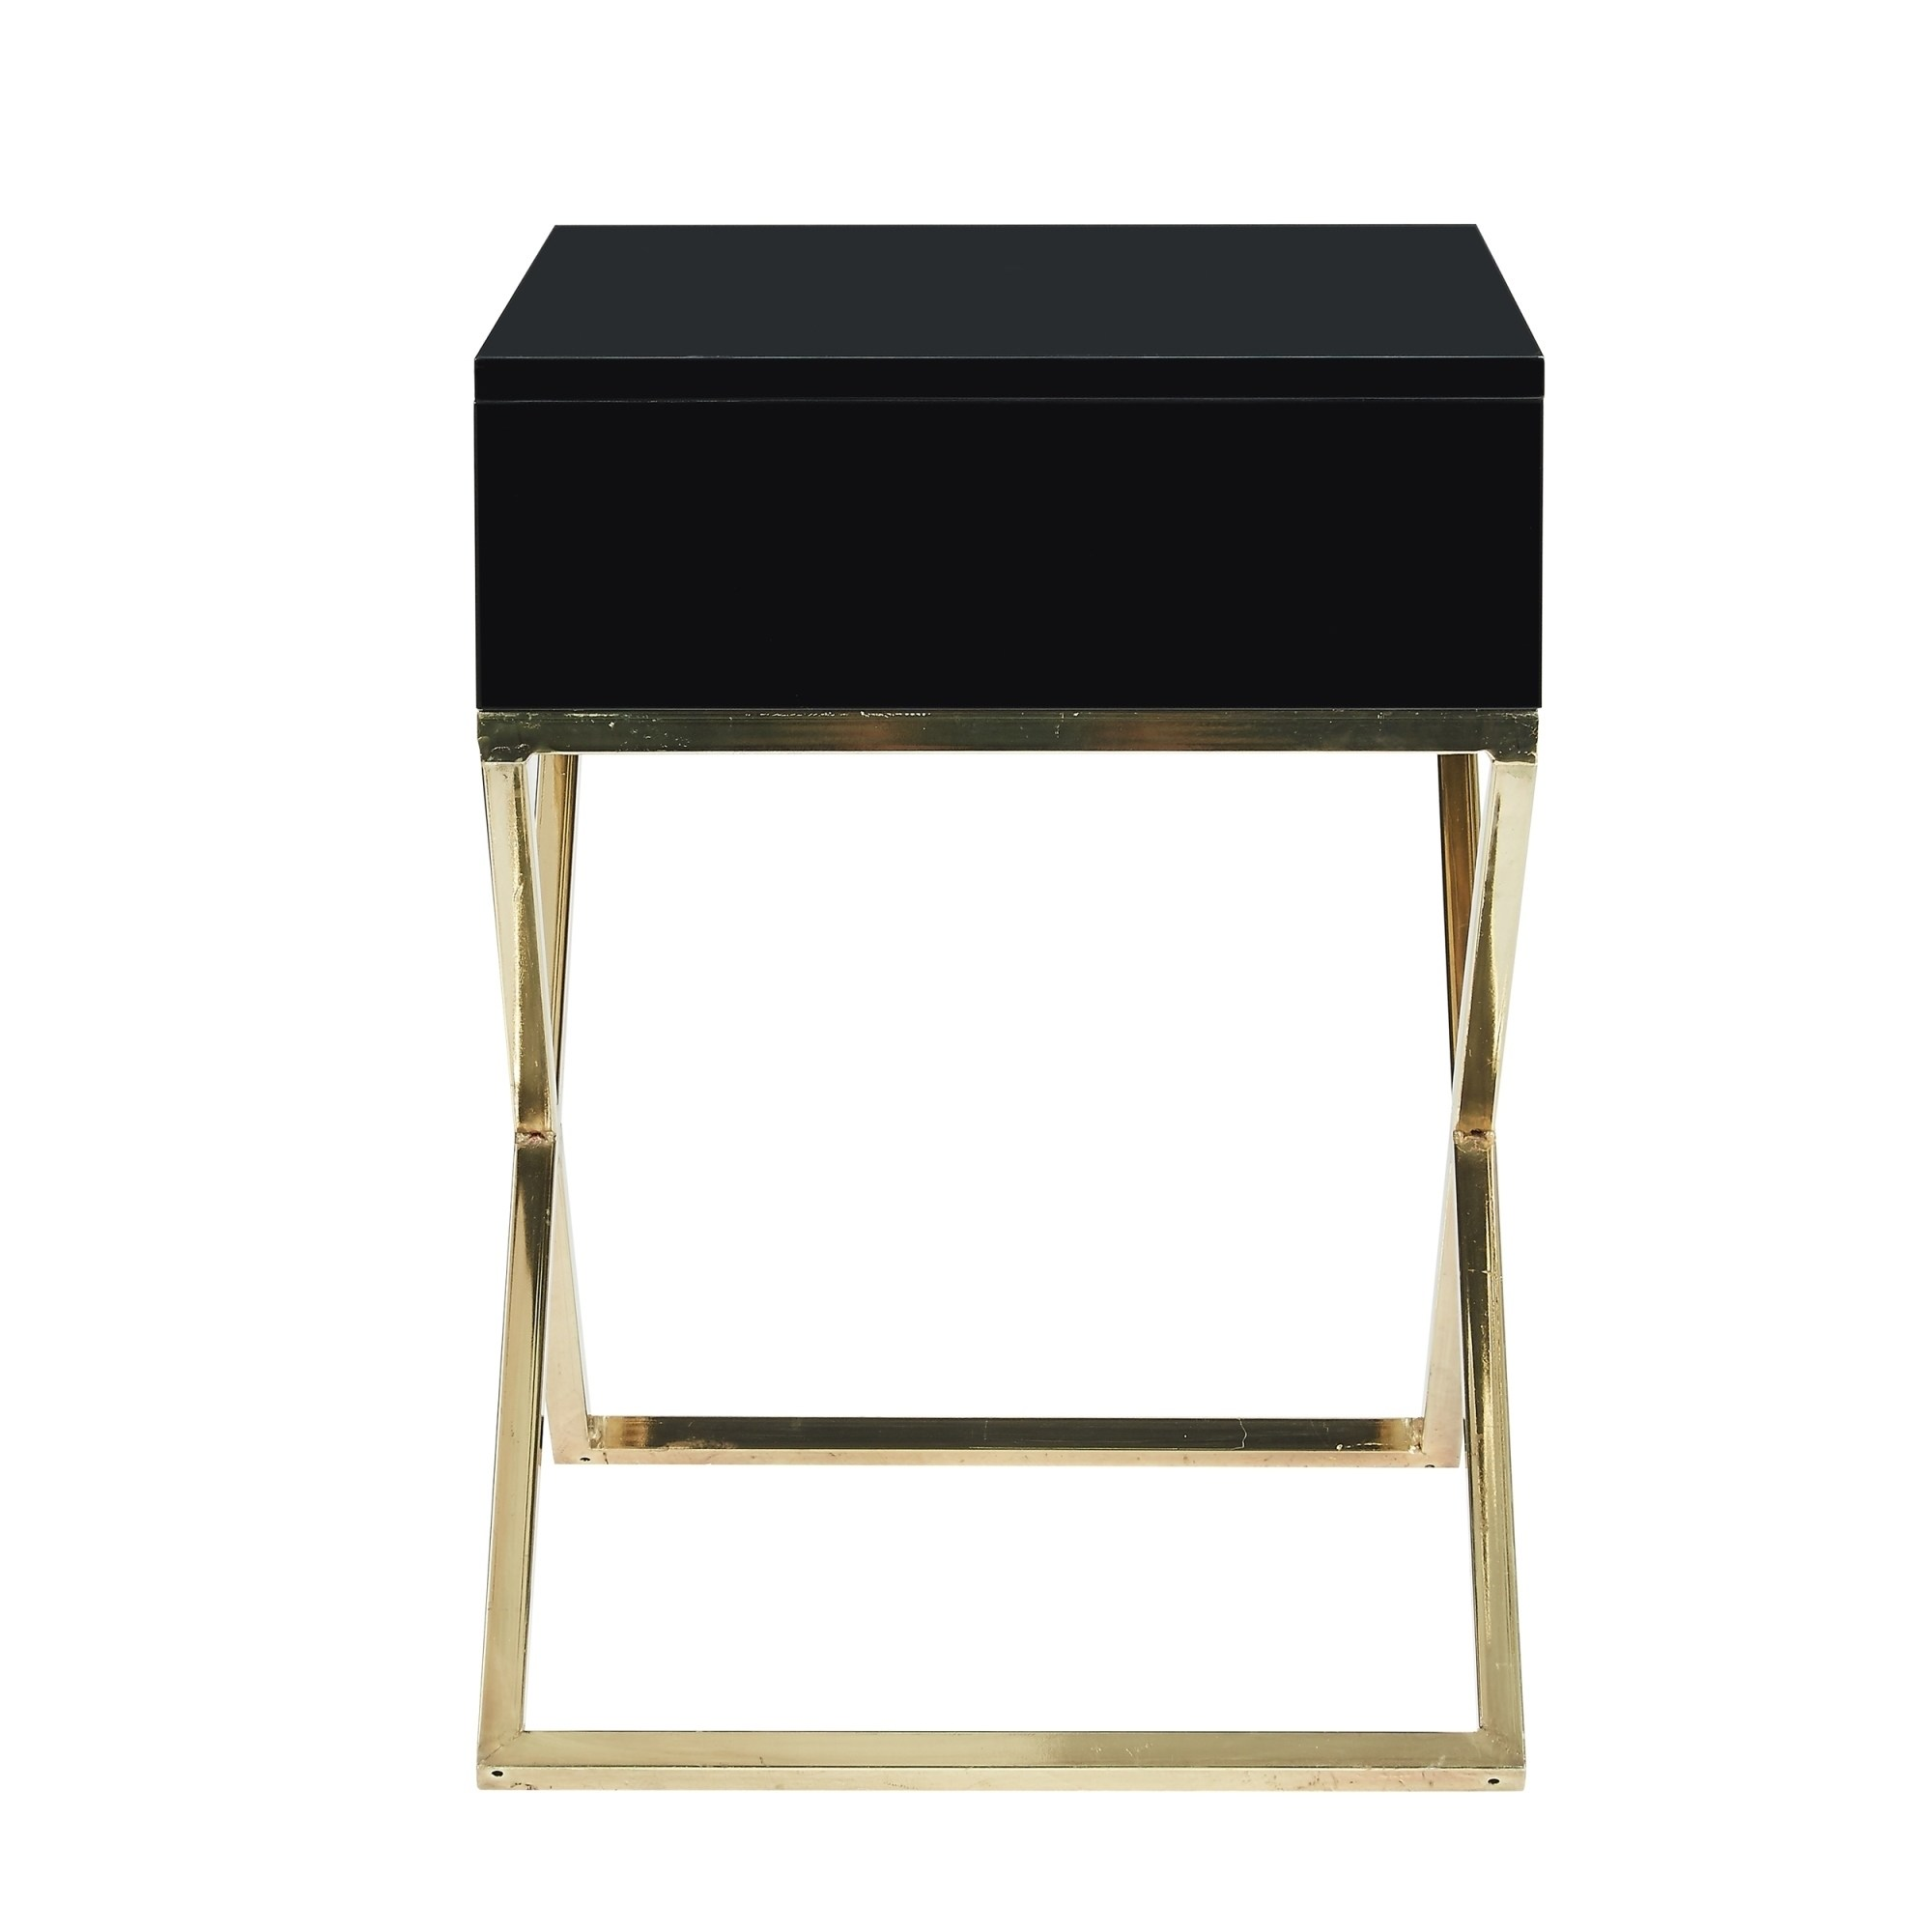 square lacquer legs end table accent nightstand with drawer tables free shipping today rustic industrial coffee mirrored bedside units decorative clear lucite black cabinet dining